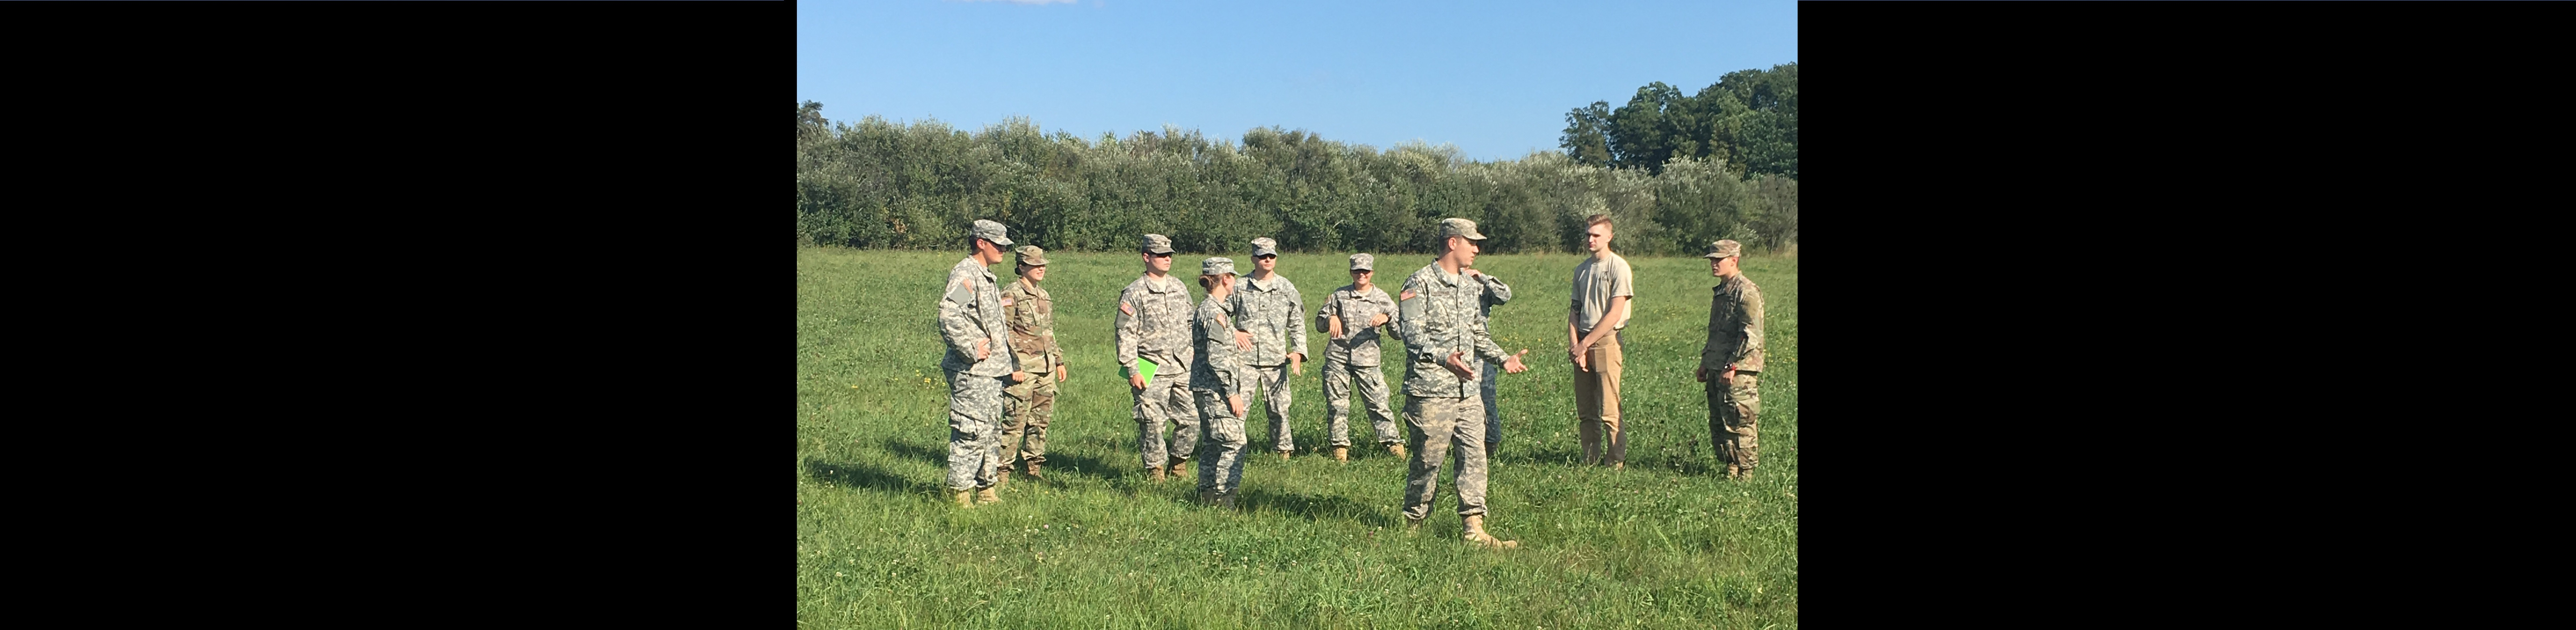 Cadets are lead in a lab of education on Land Navigation to understand beginner level map reading and plotting.